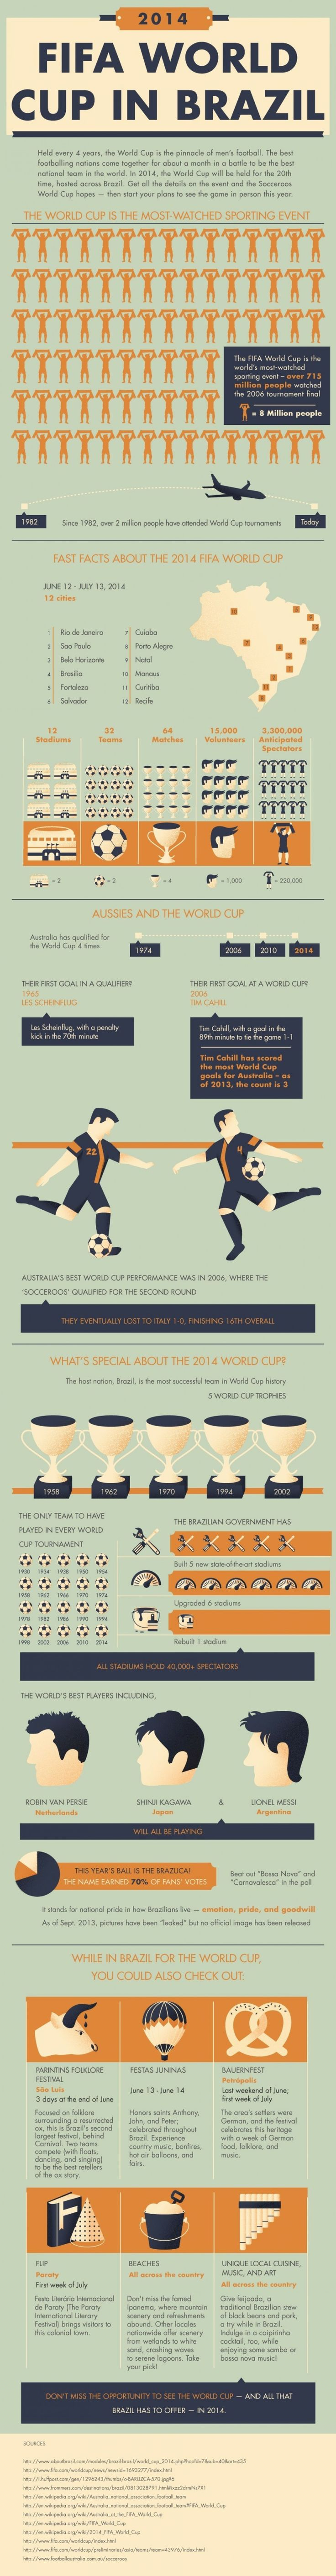 Everything you need to know about the 2014 World Cup in Brazil Infographic